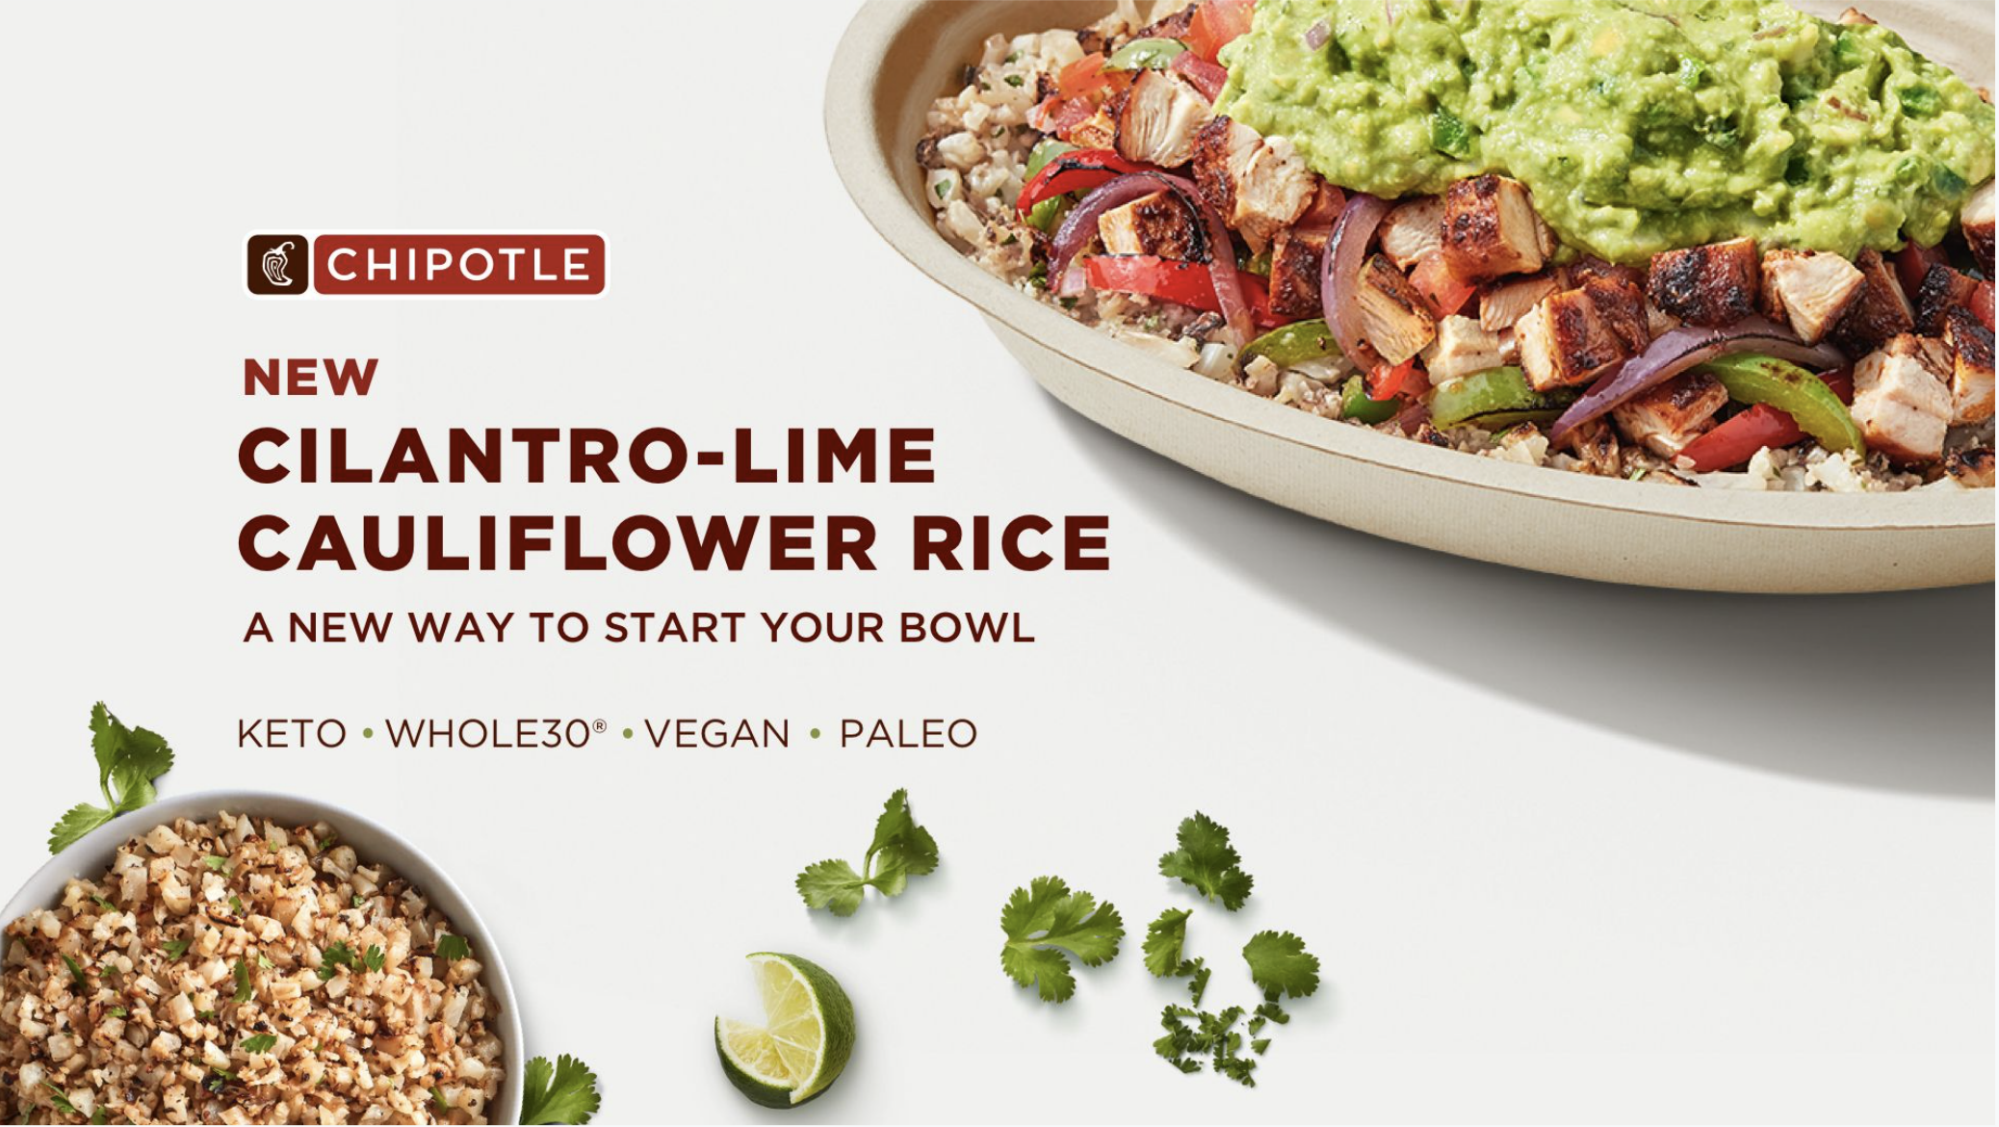 Chipotle's newest food is anti-carb and will cost you an extra $ 2